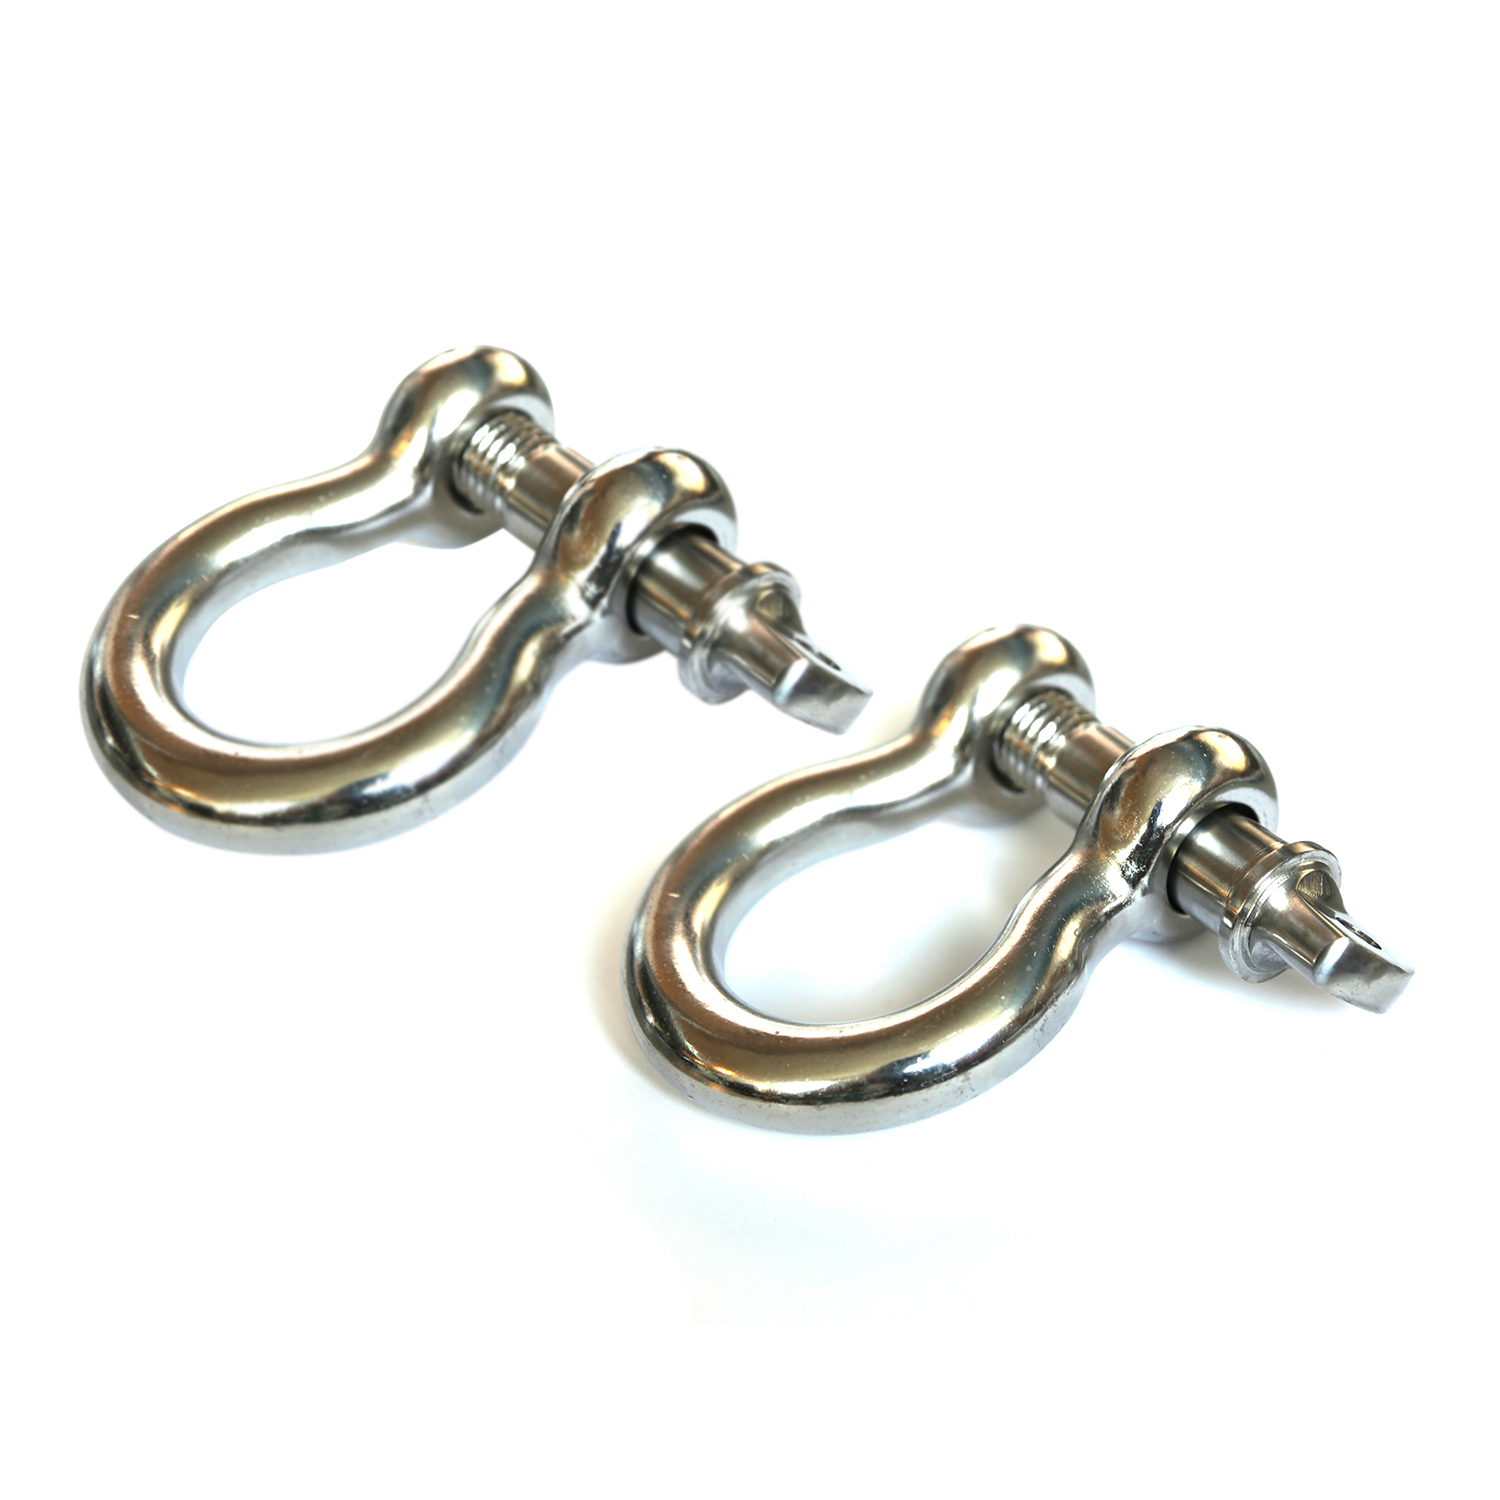 Rugged Ridge D-Shackles, Stainless Steel, 3/4-Inch, Pair